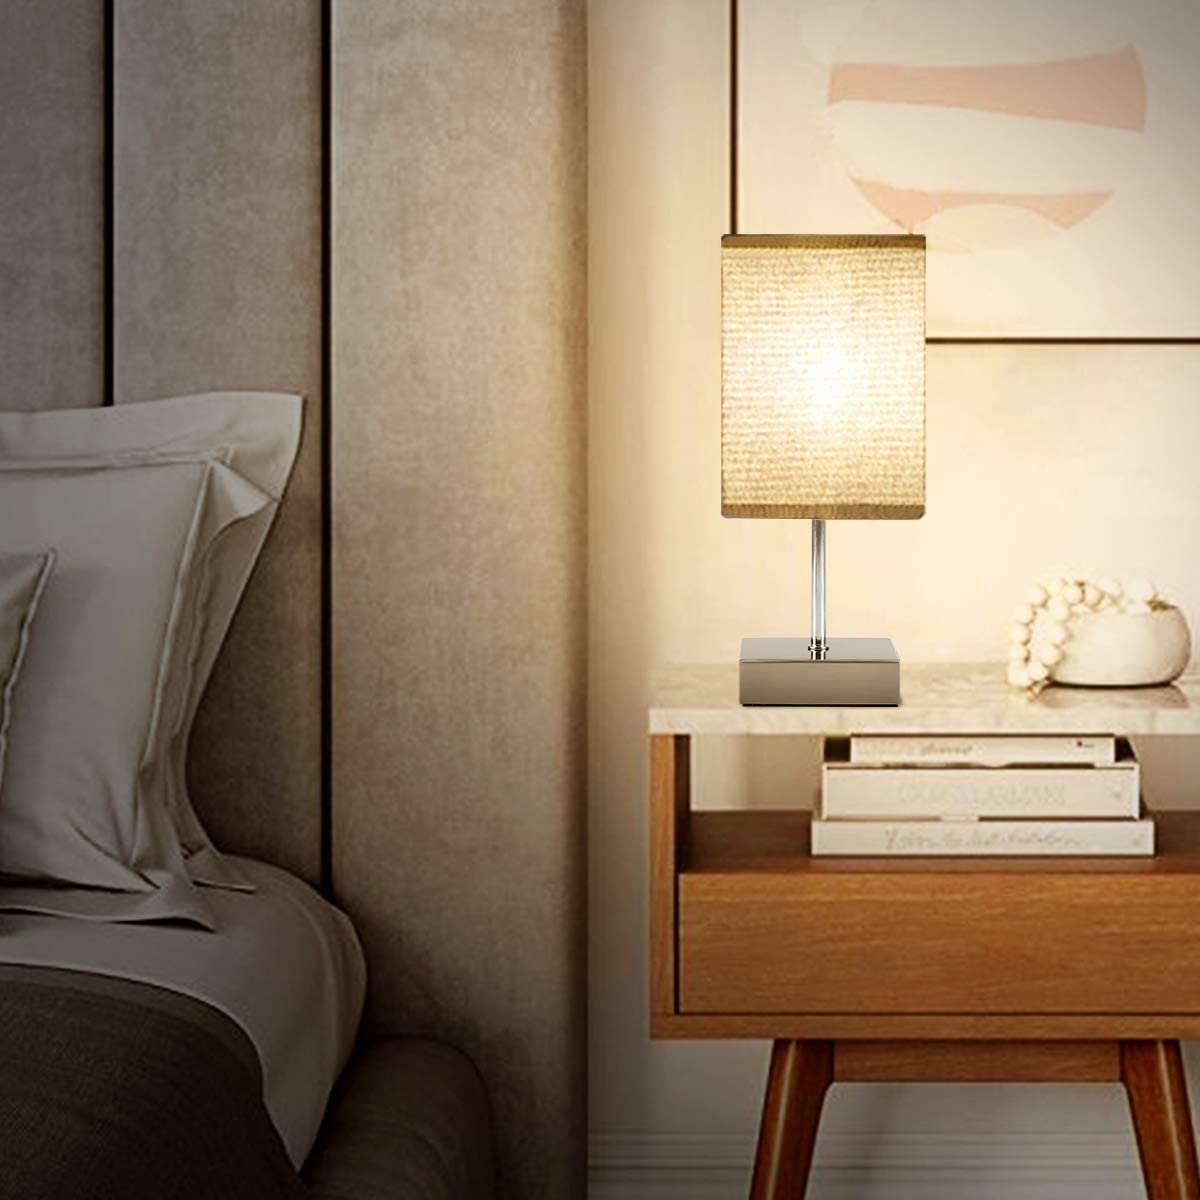 Modern Touch Lamps for Bedroom Living Room Office E12 Bulbs Included 3 Way Dimmable Bedside Nightstand Lamps with Silver Metal Base /& Grey Linen Fabric Shade Touch Control Table Lamp Set of 2